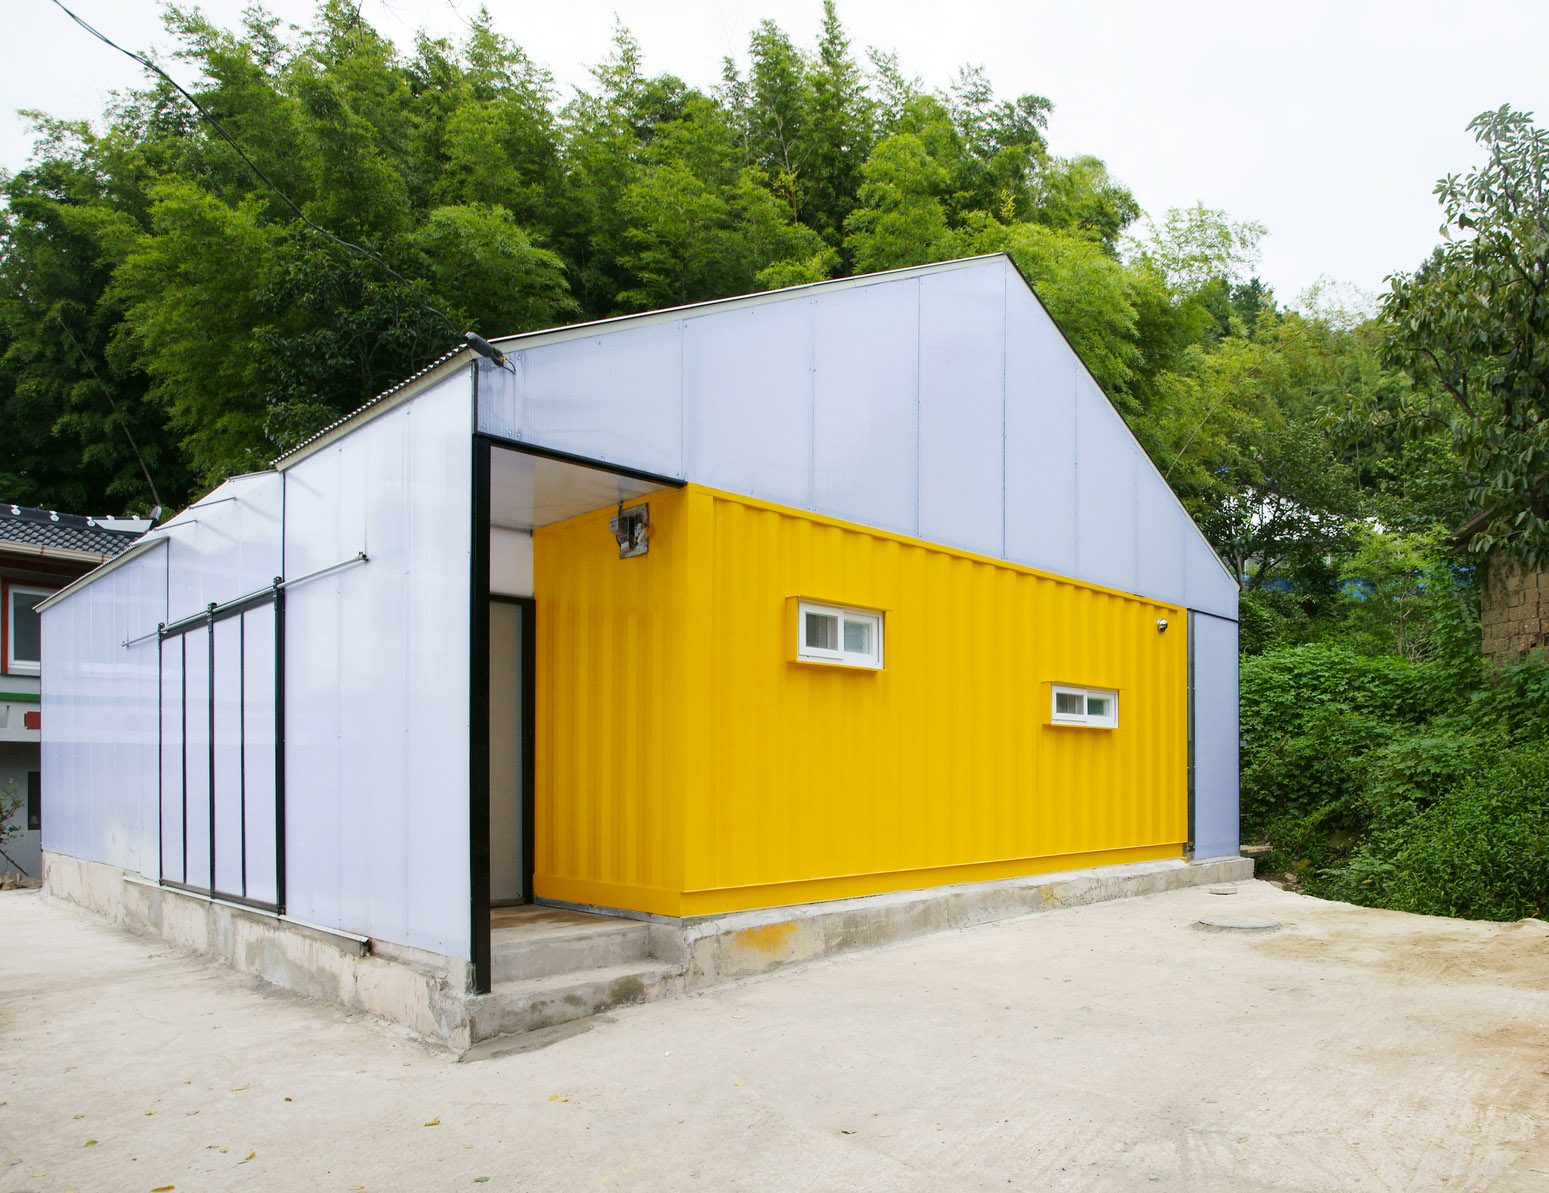 Low cost house in a house made of 2 shipping containers urbanist - Homes made from shipping containers ...